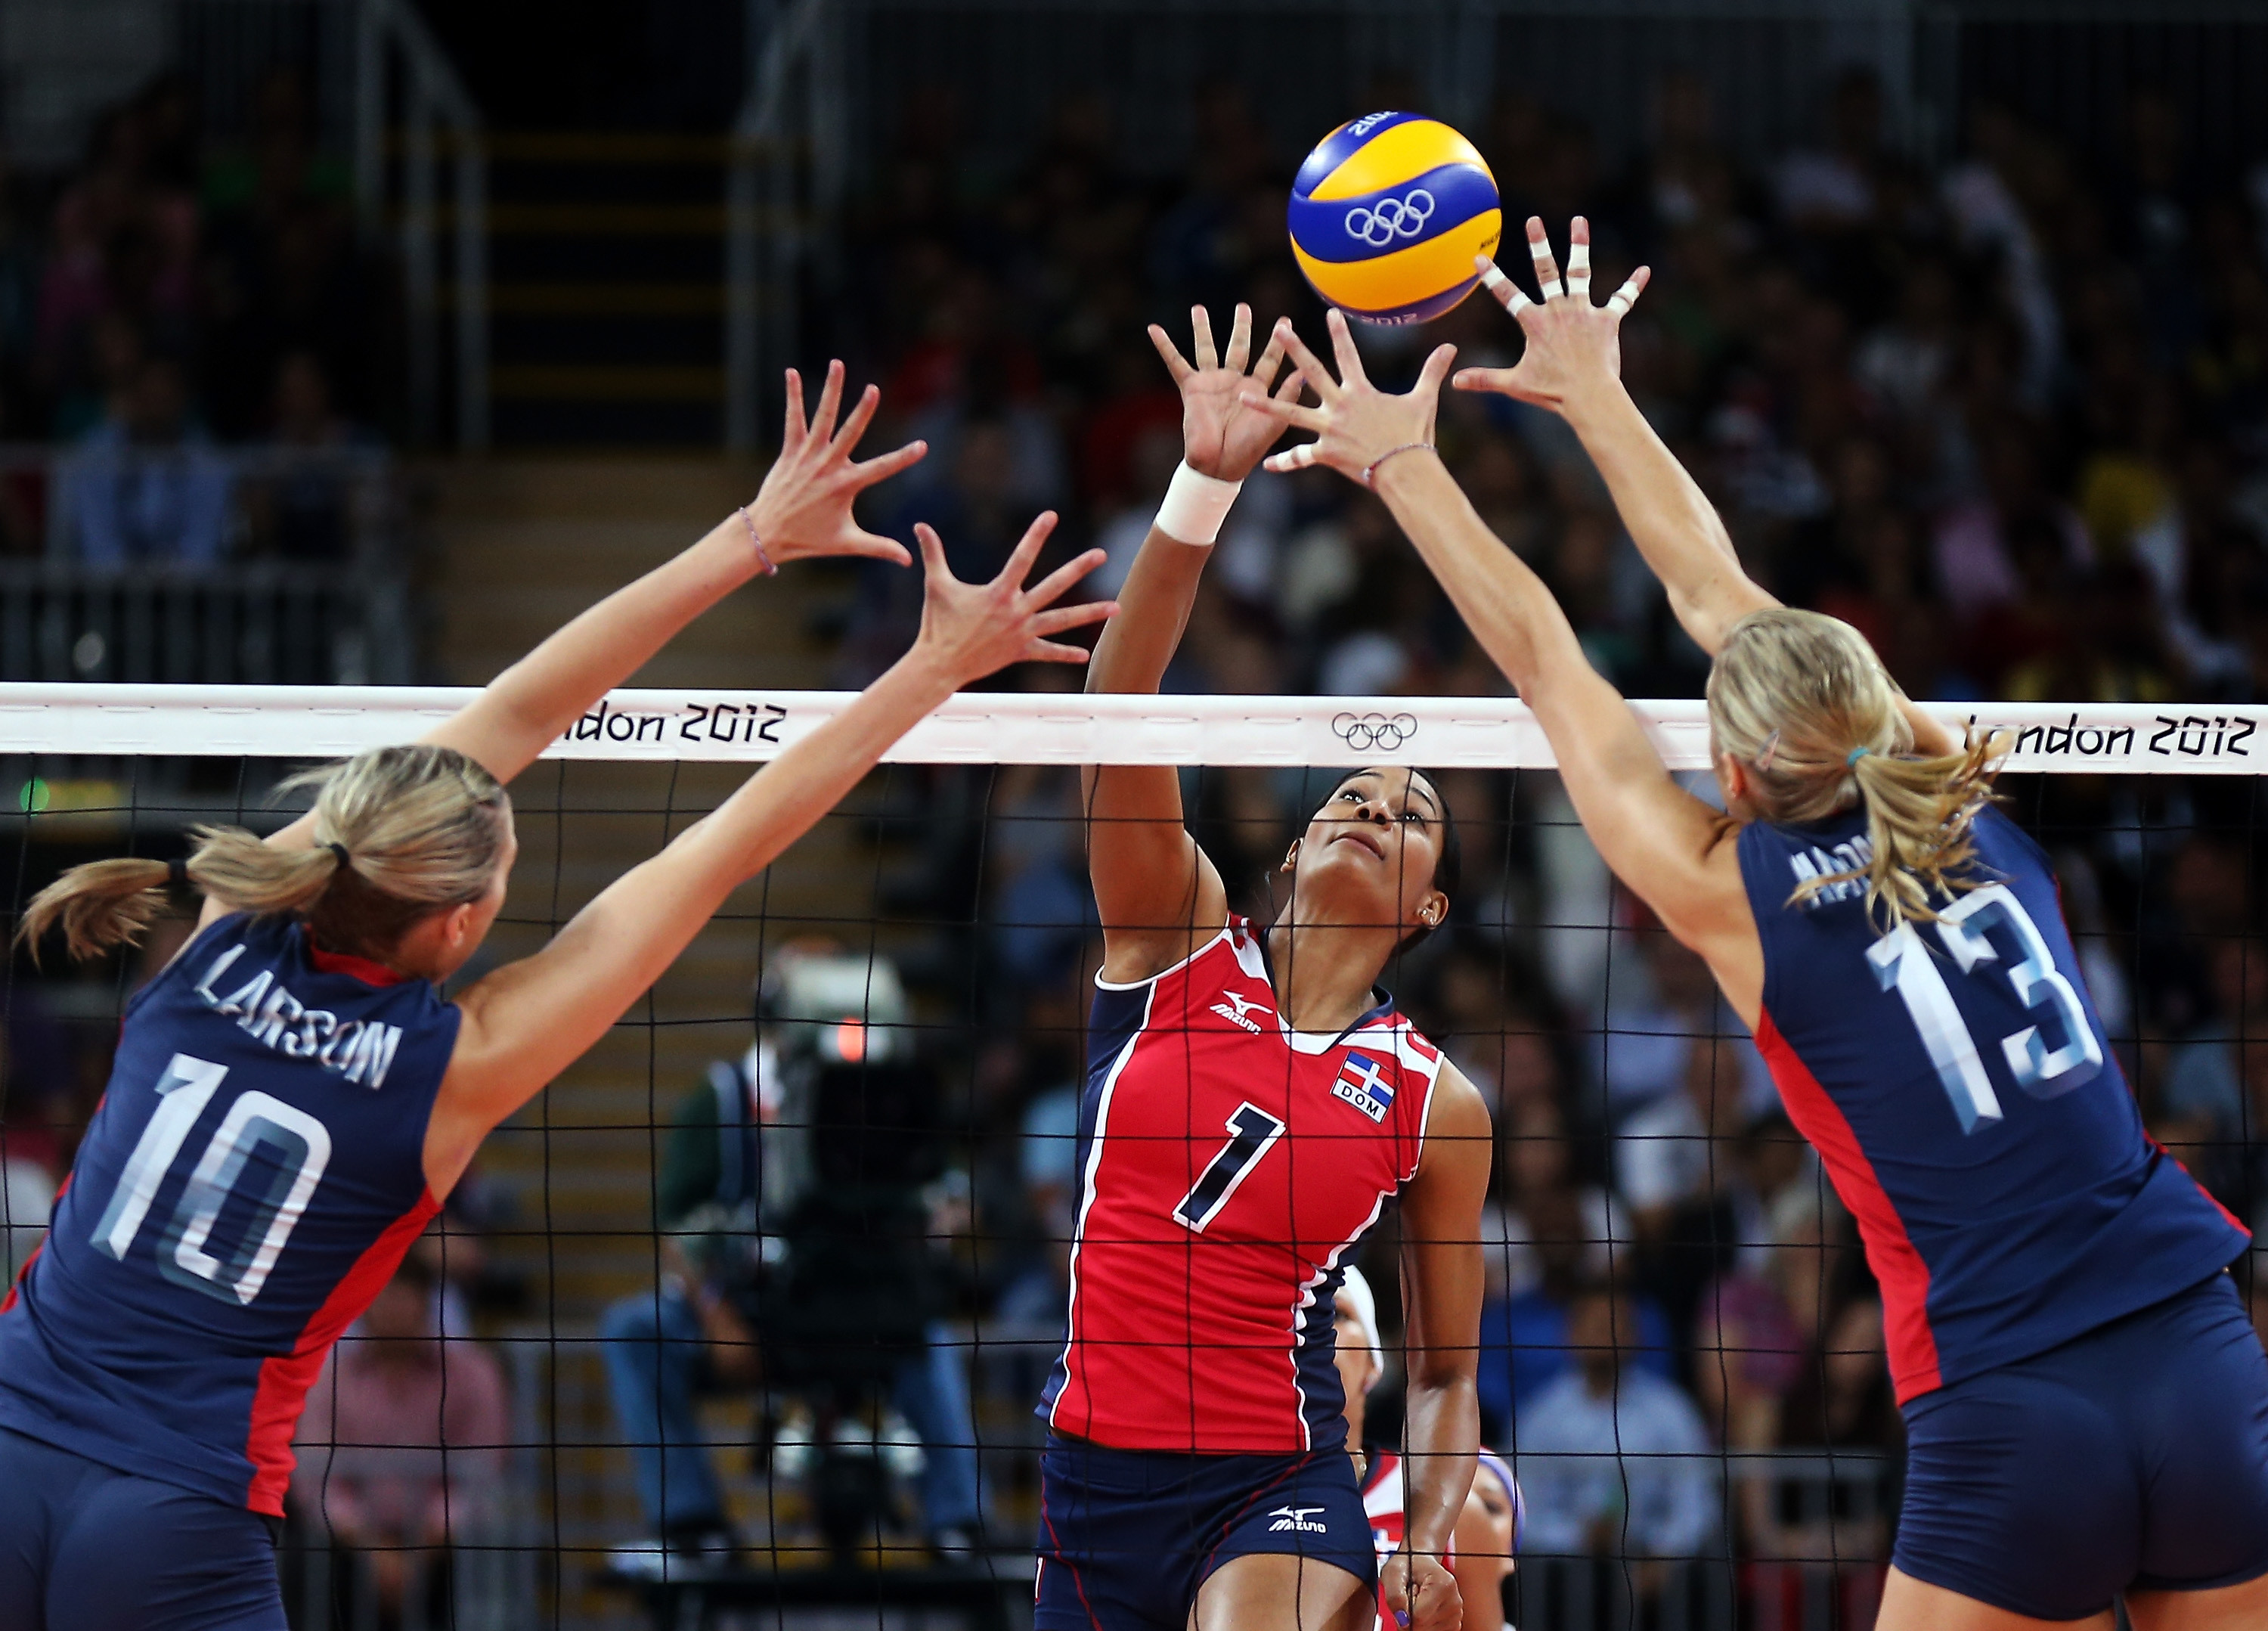 VolleyBall Wallpaper Find best latest VolleyBall Wallpaper for